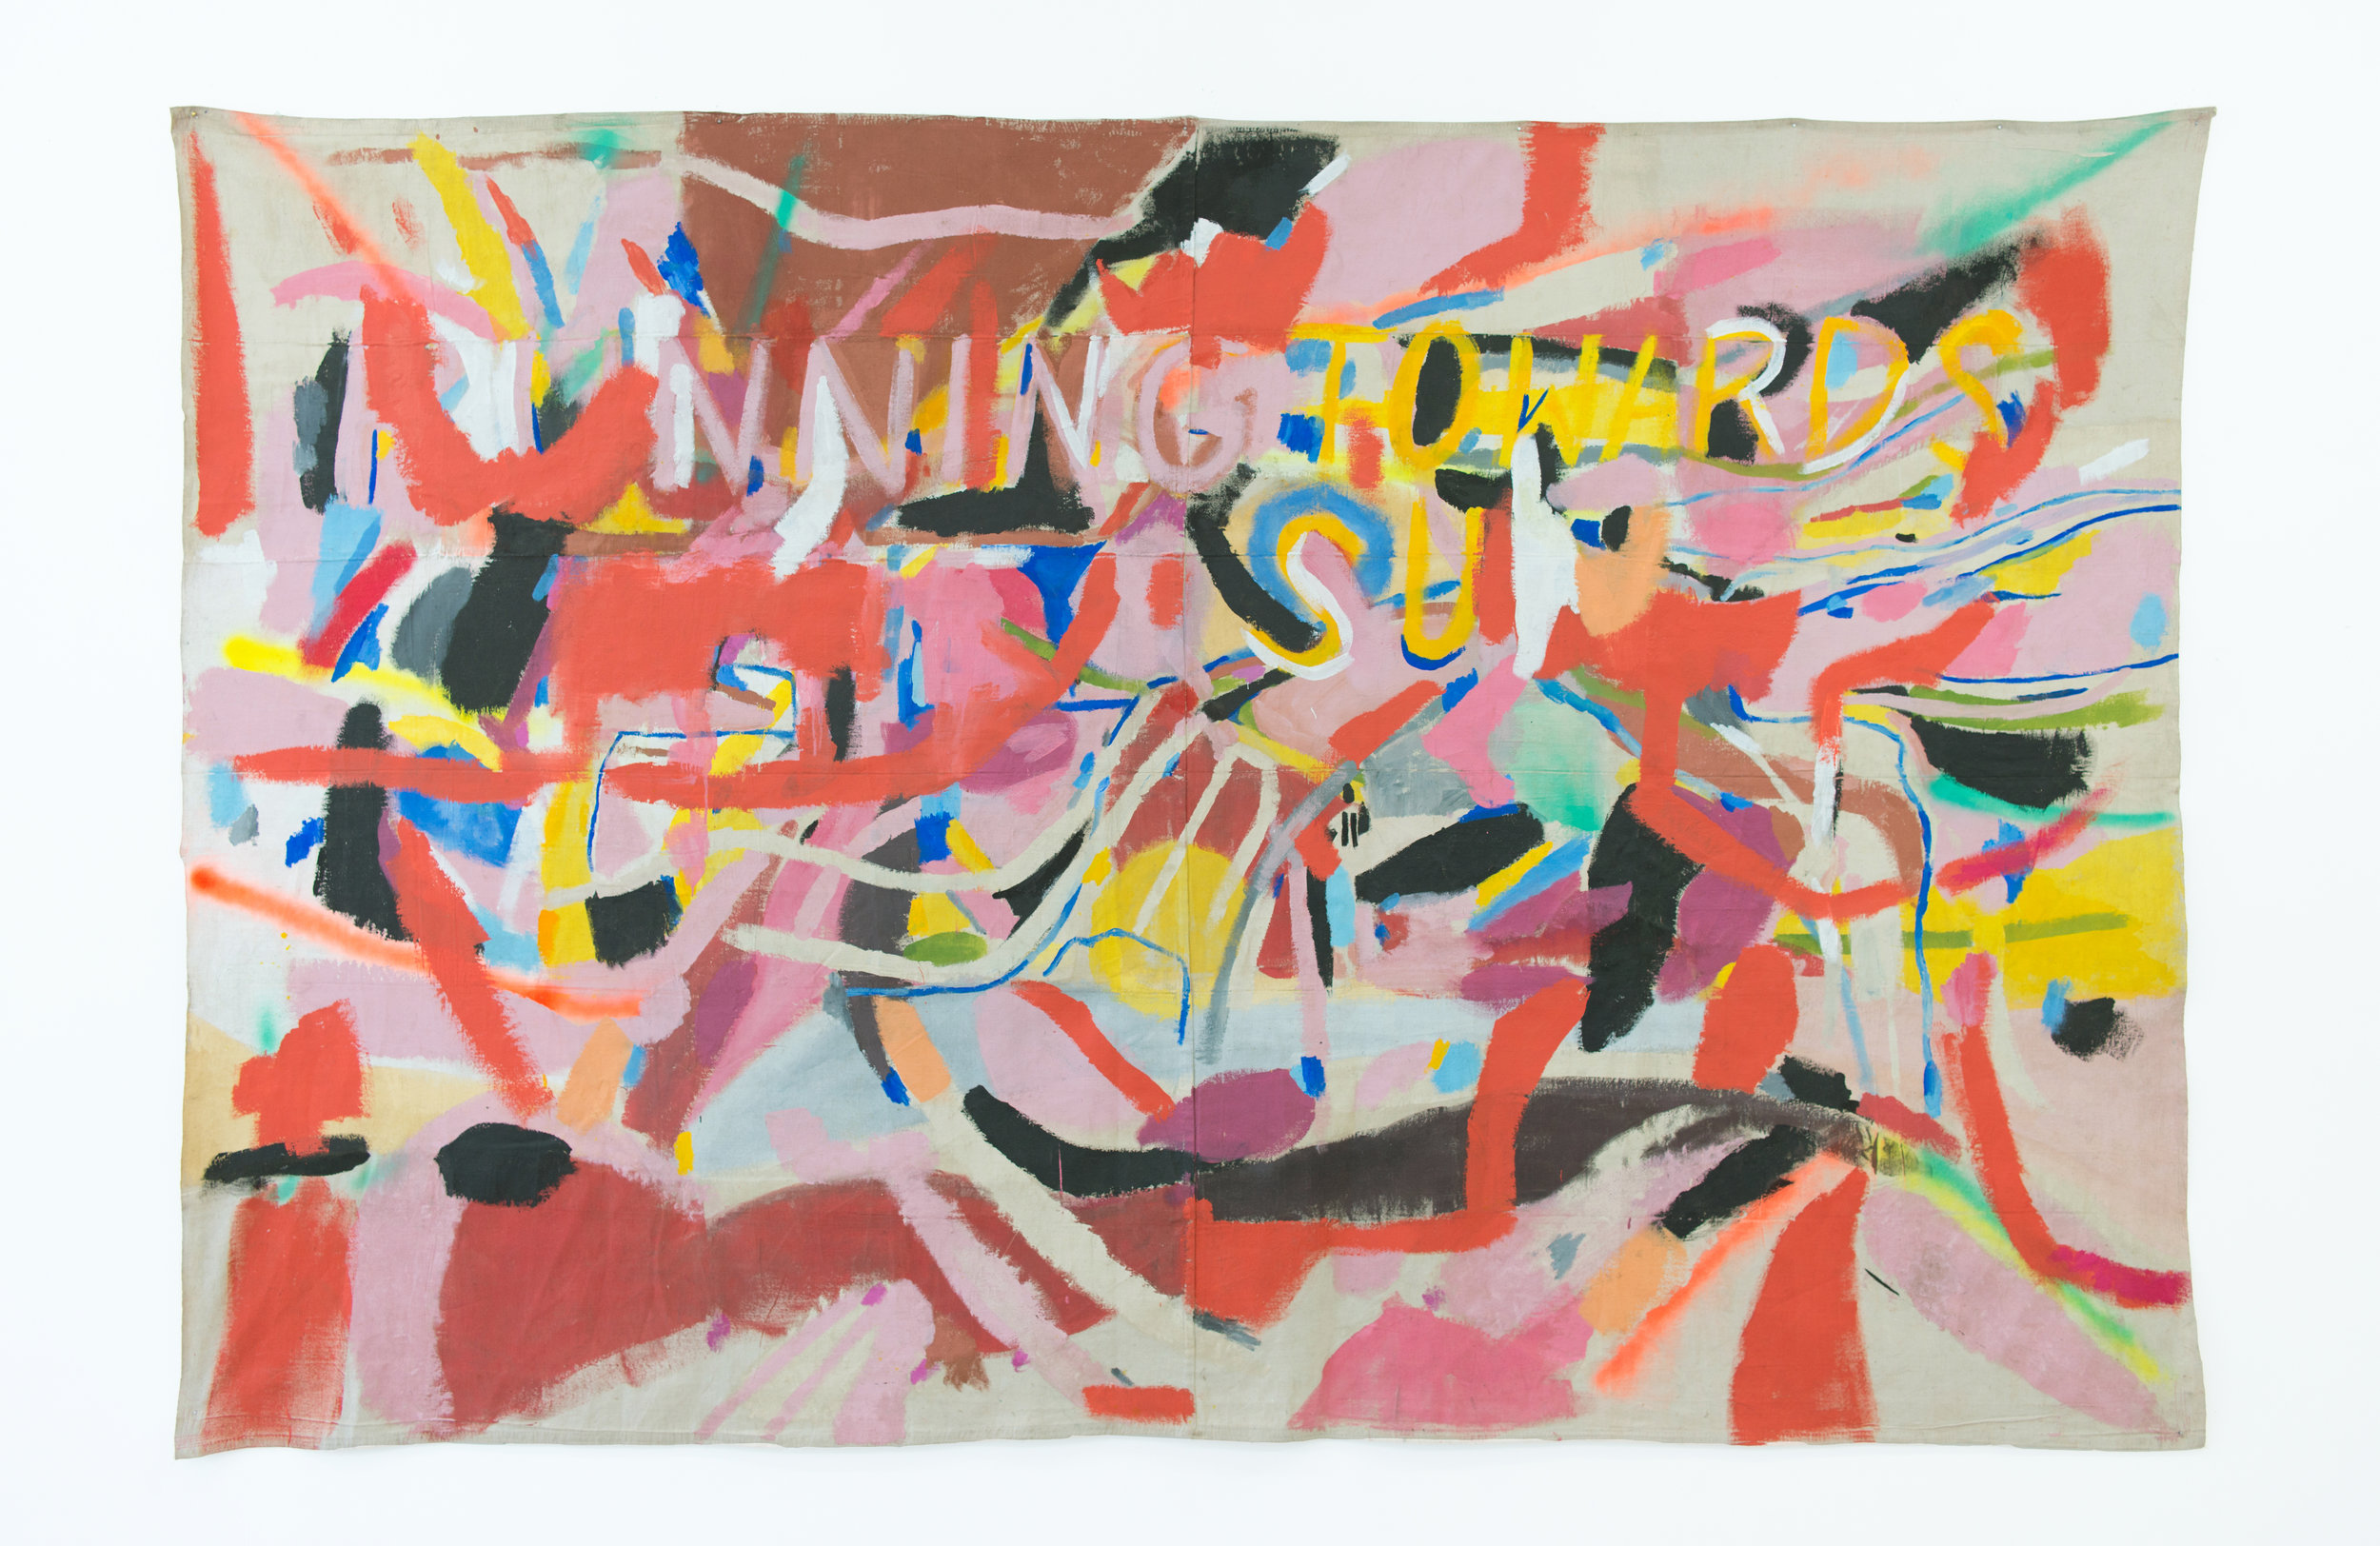 Grace Rosario Perkins   Running Towards the Sun , 2018 Acrylic and spray paint on canvas 71 x 106 inches